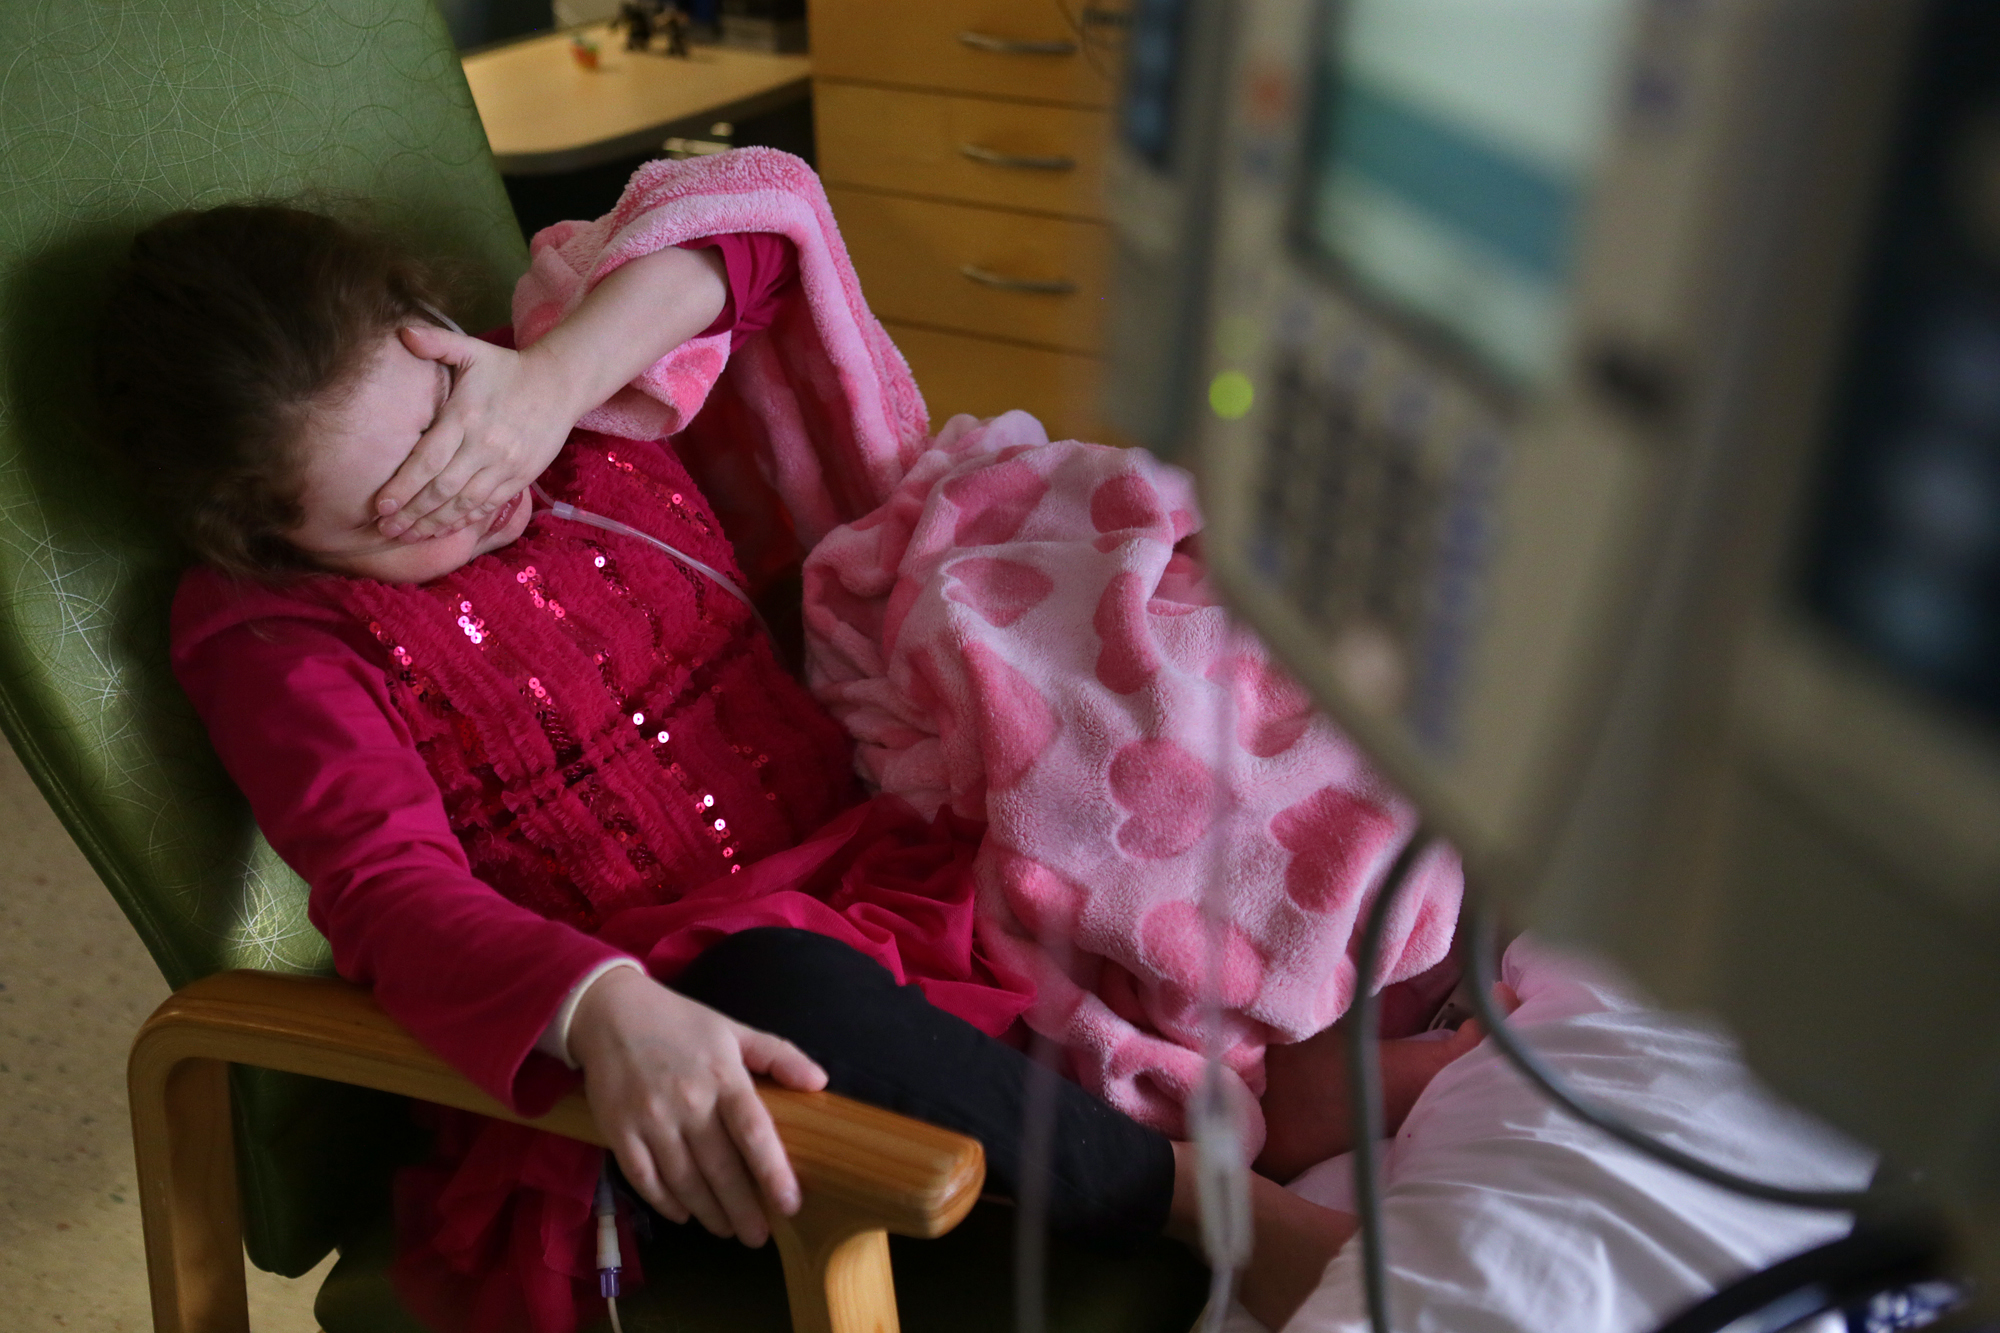 Heather Gwin, 9, of Greenwood, Ind., shows signs of fatigue while making crafts in her room at Children's Hospital on Friday, Dec. 18, 2015. Heather, who has cystic fibrosis, is on the waiting list for a lung and liver transplant. New rules that relax the geographic boundaries for donor lungs are supposed to help children get lung transplants sooner.